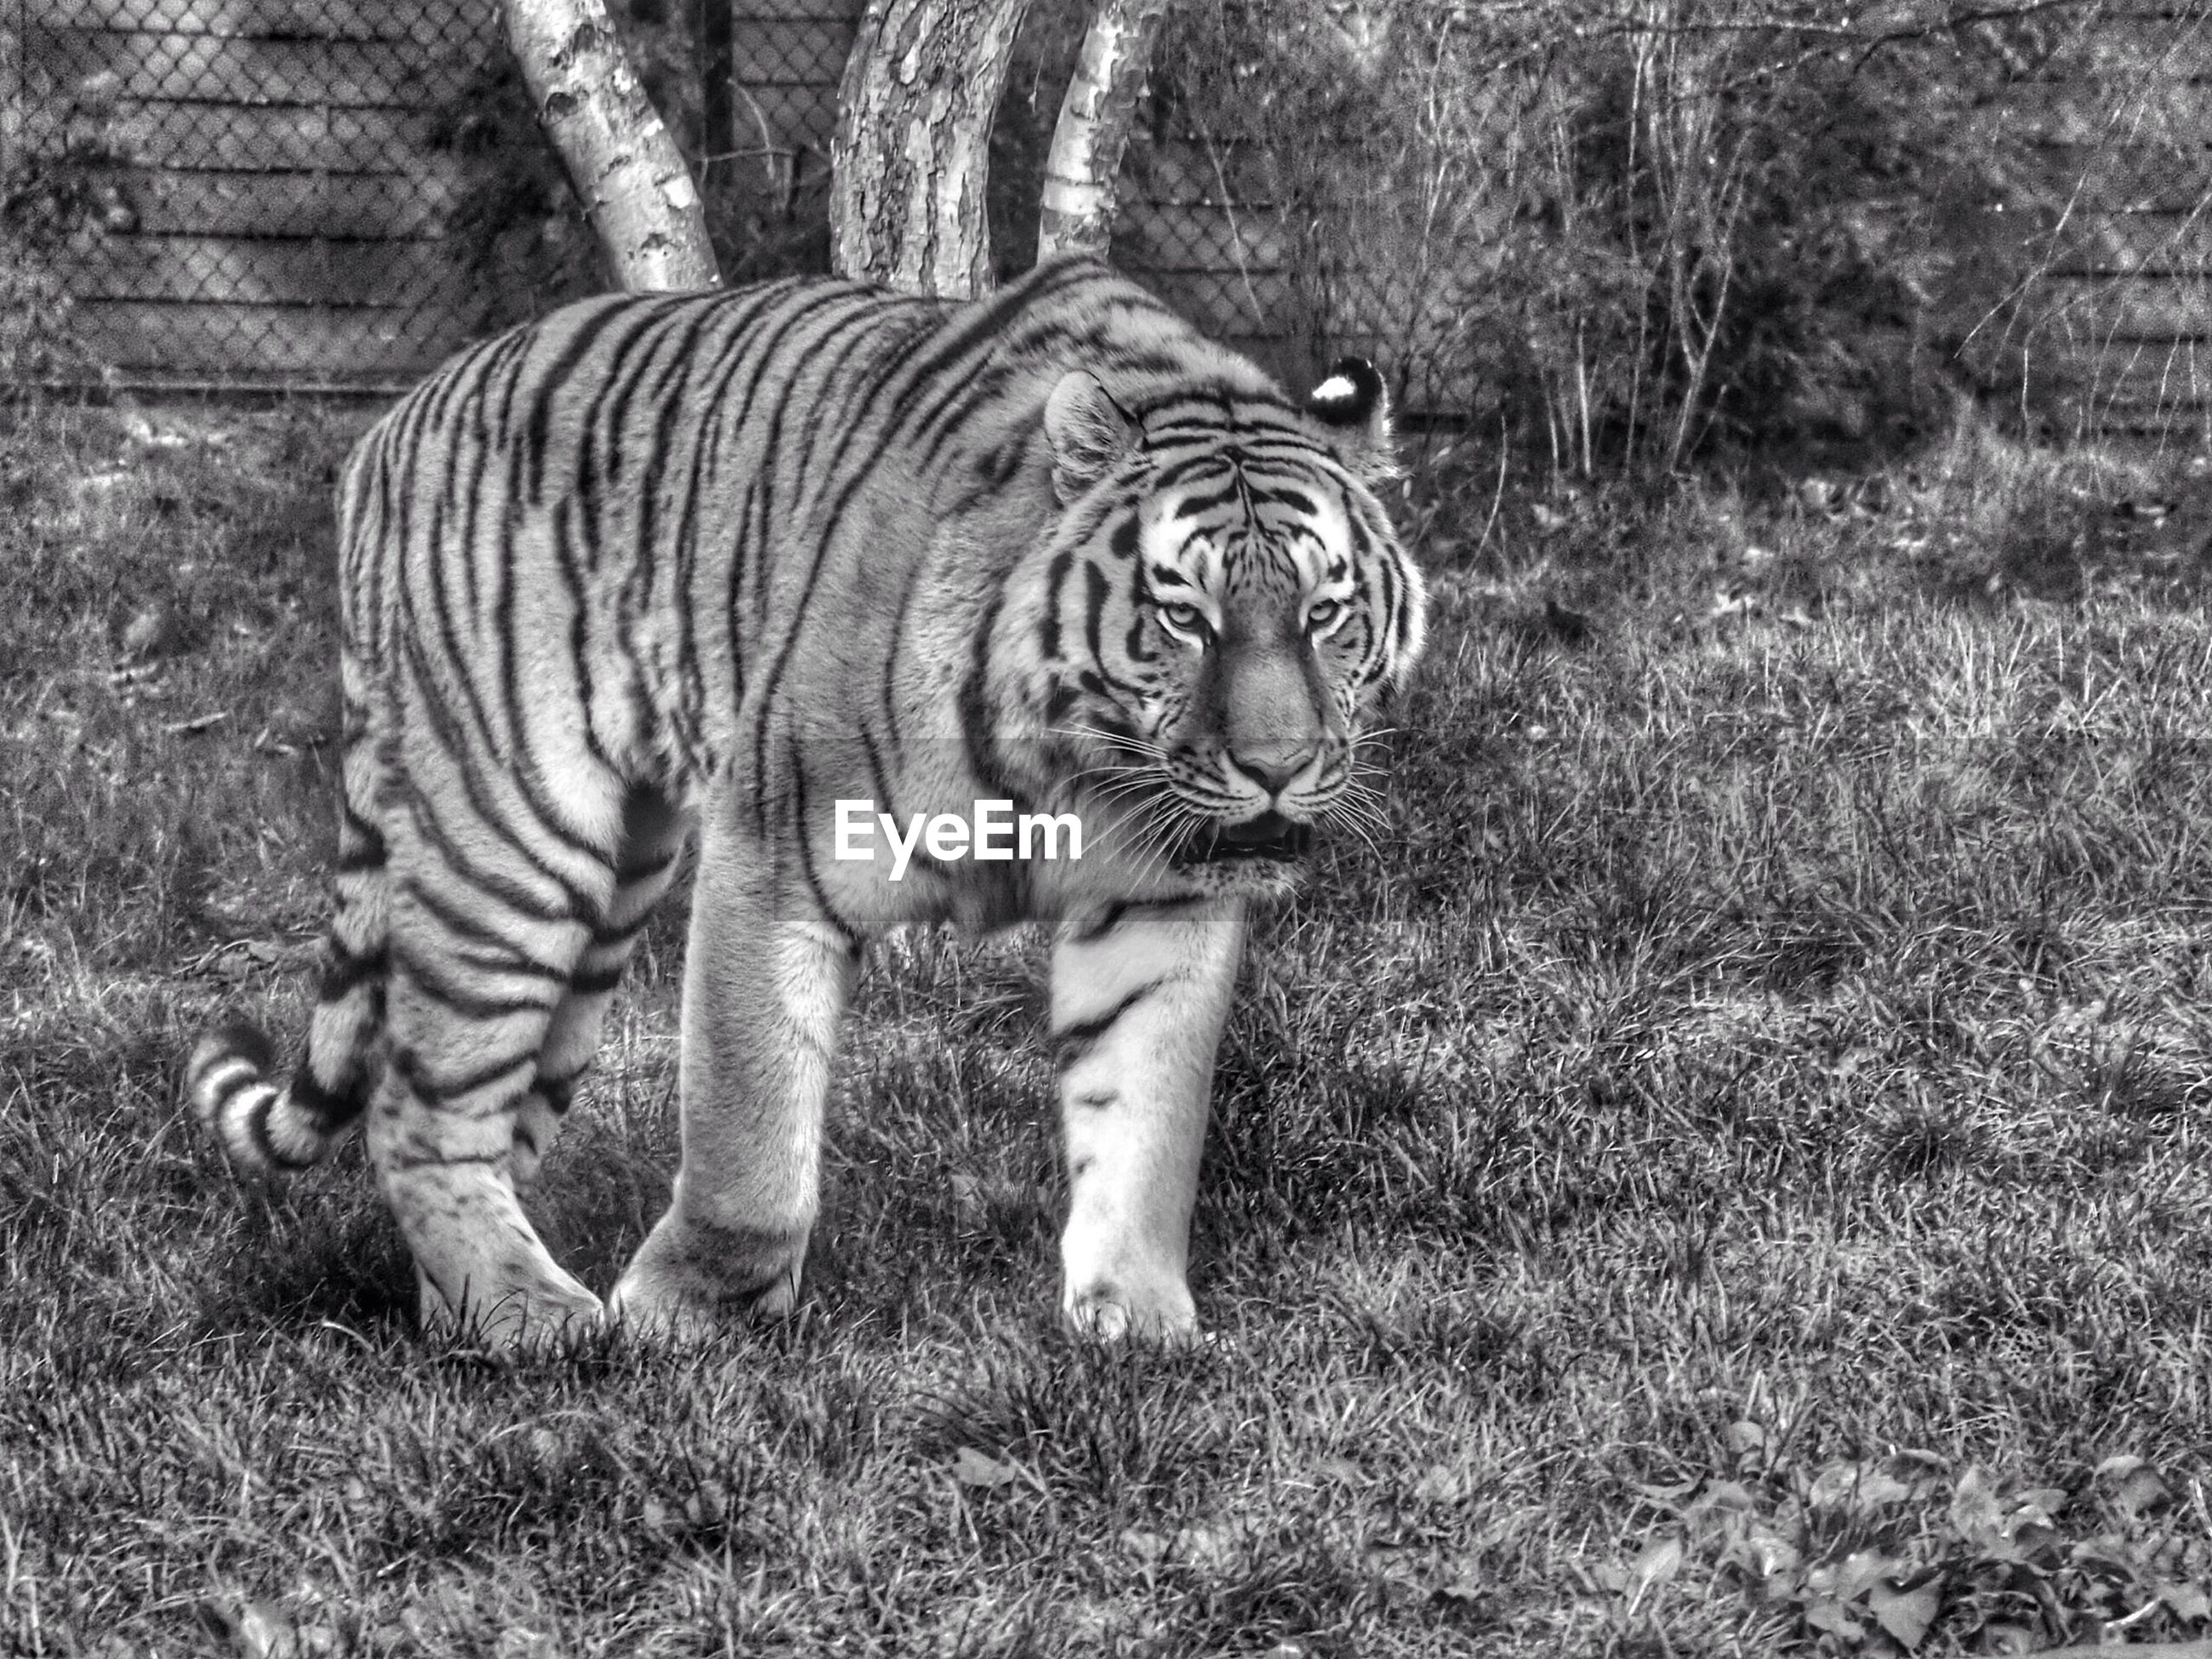 Tiger on field at zoo